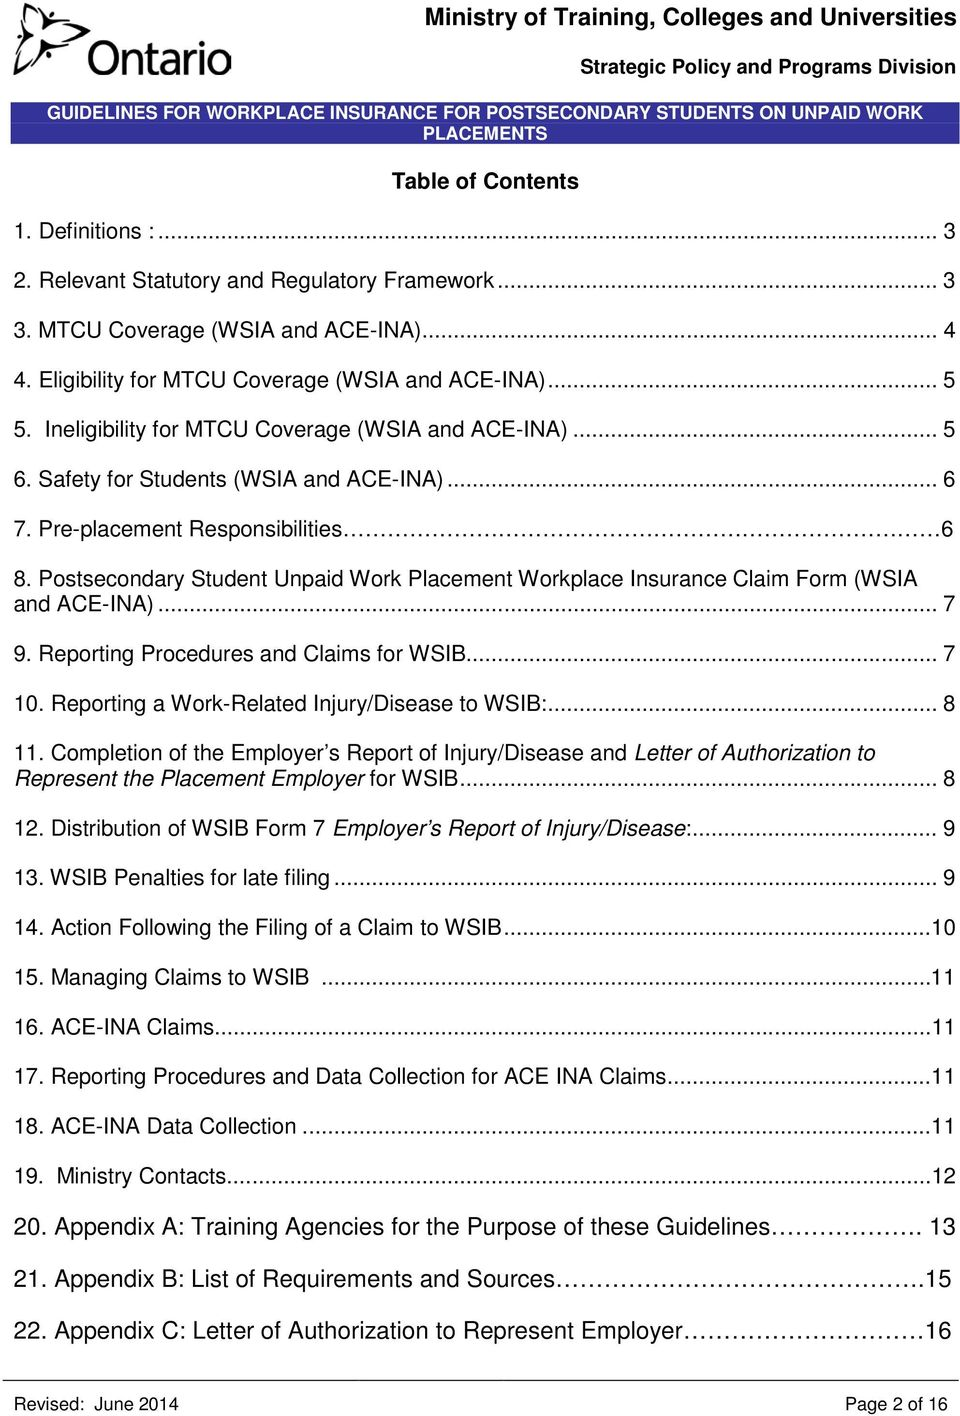 Postsecondary Student Unpaid Work Placement Workplace Insurance Claim Form (WSIA and ACE-INA)... 7 9. Reporting Procedures and Claims for WSIB... 7 10.